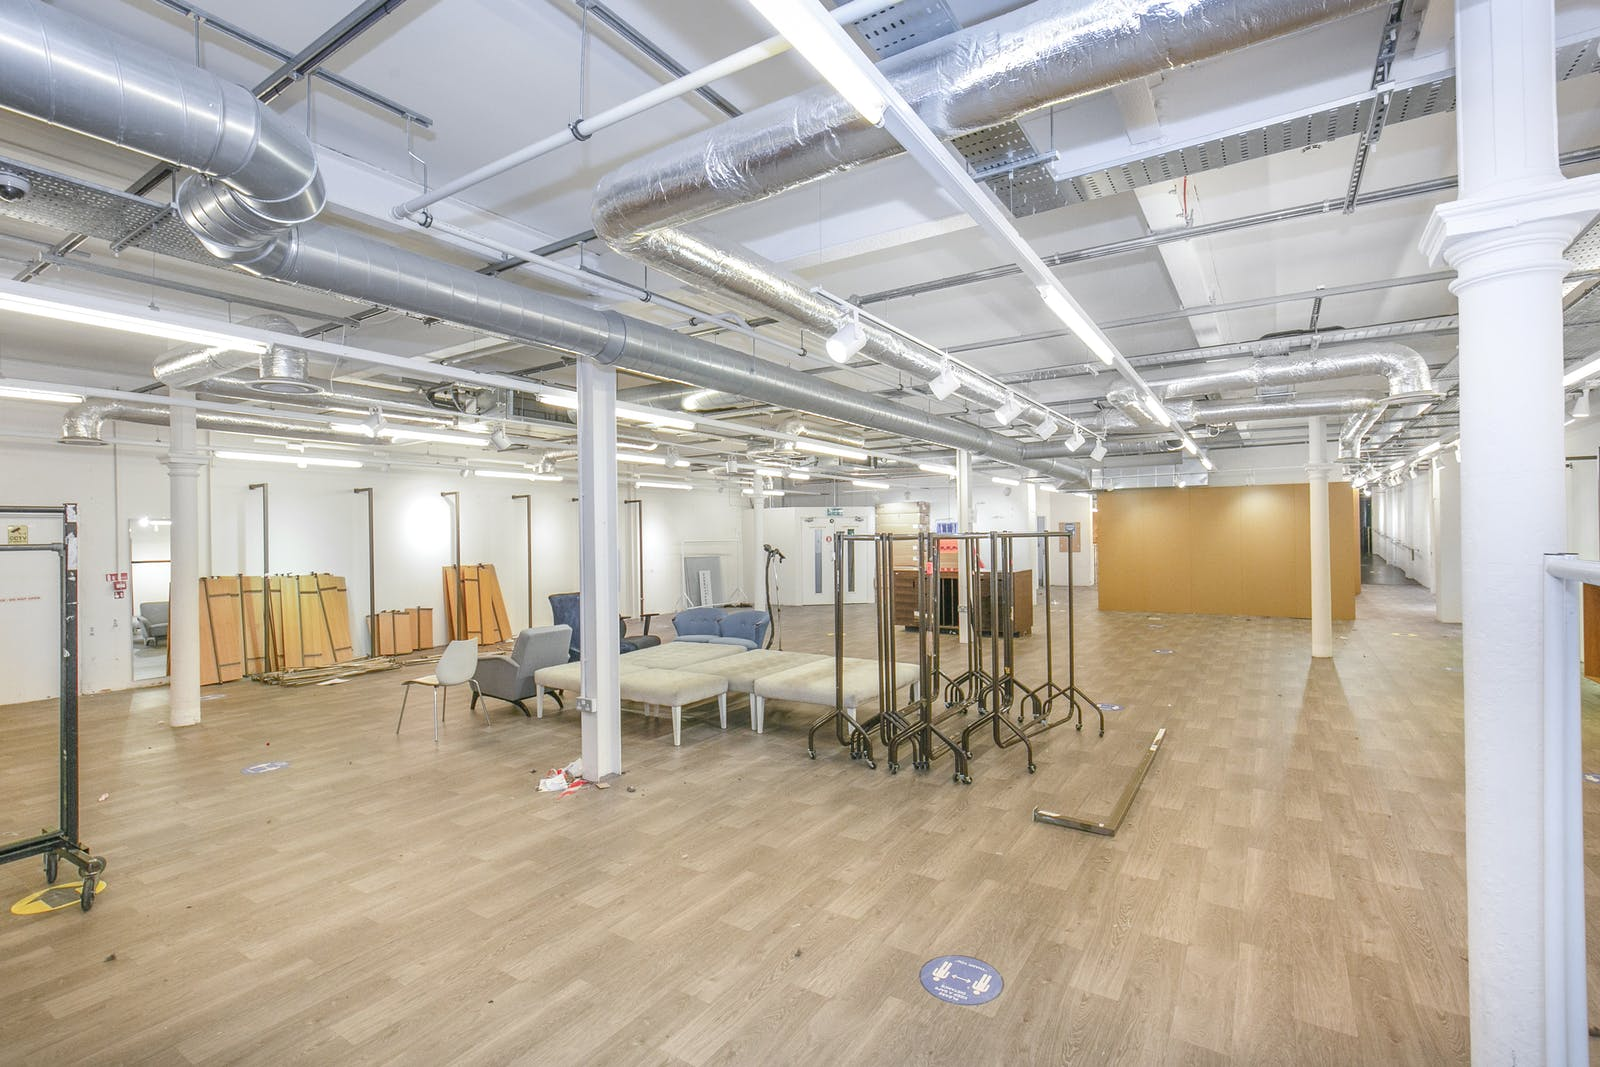 7-9 Chatham Place, London, Office / Industrial / Trade Counter / Retail / Showroom / Leisure / D2 (Assembly and Leisure) To Let - S25C7989.jpg